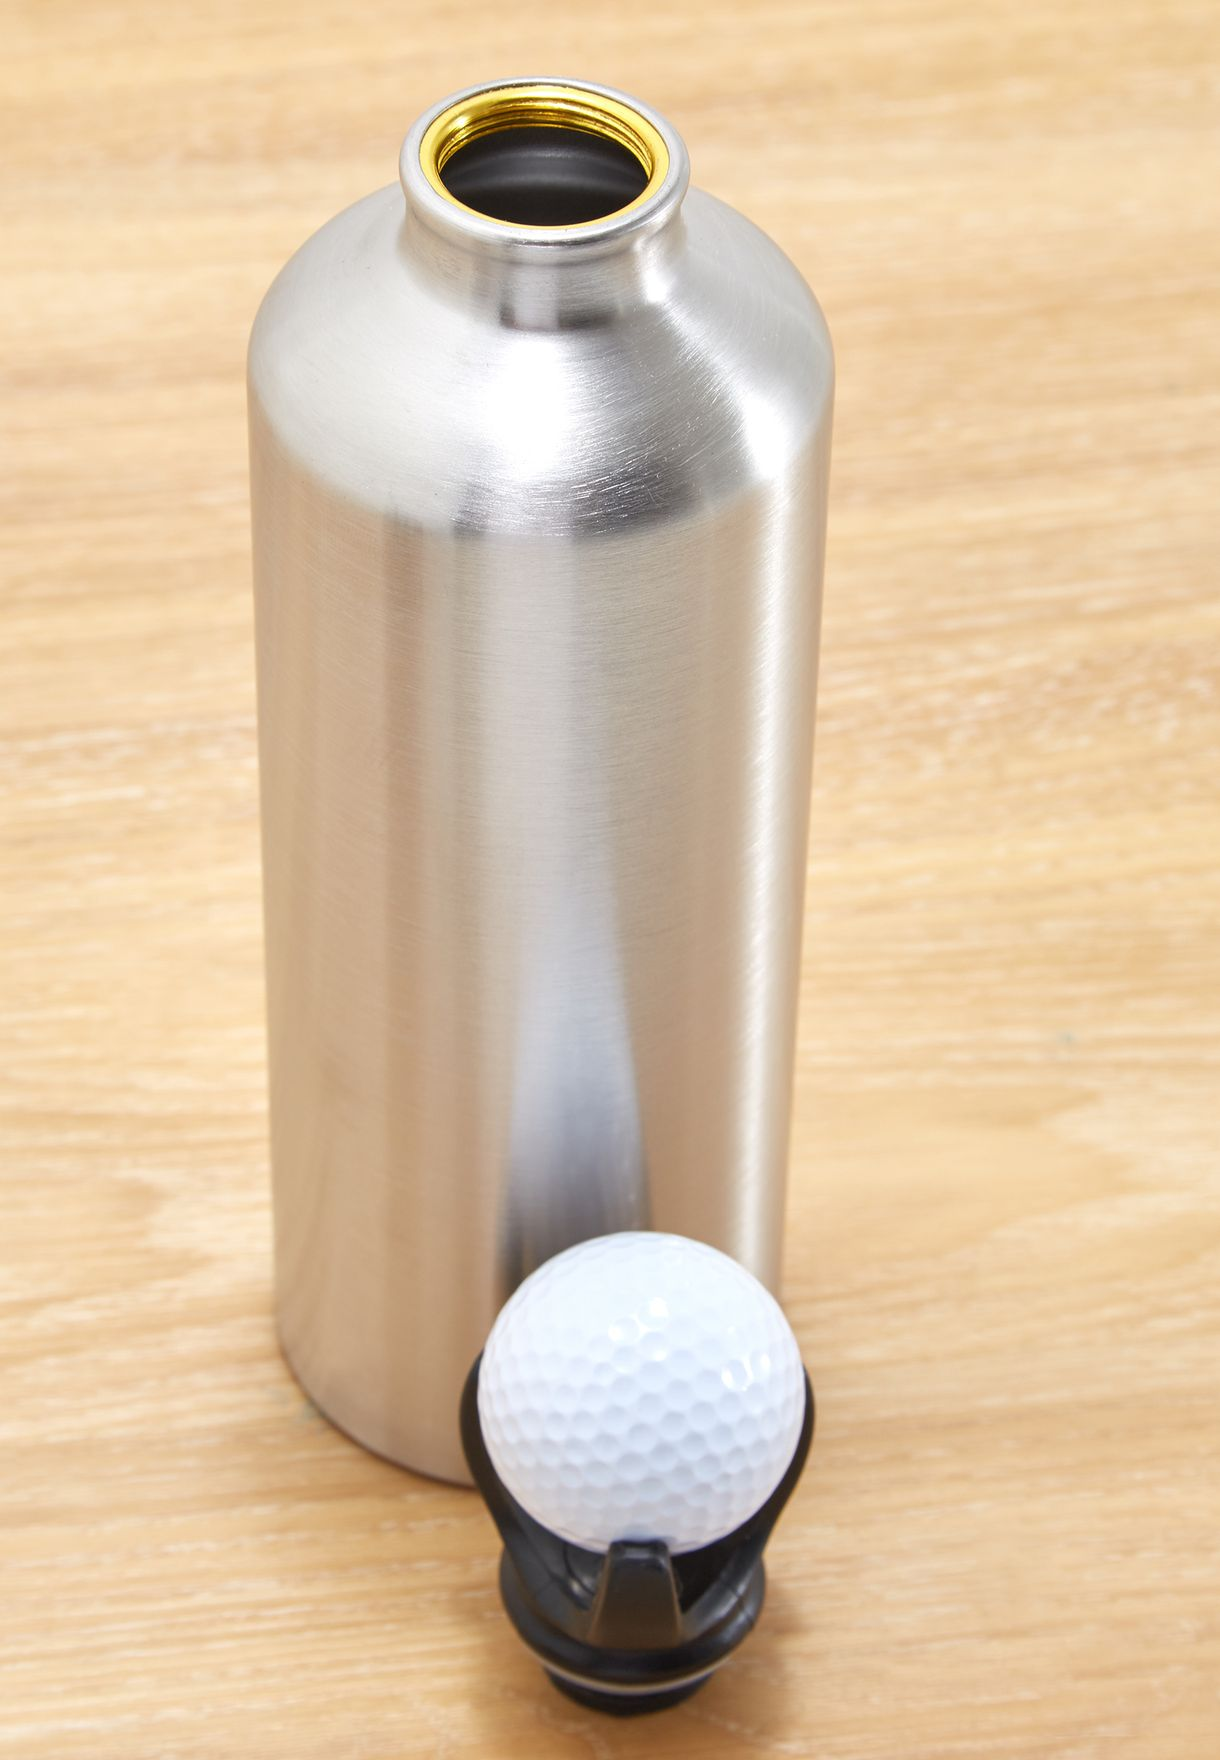 Tee Off Drink Bottle